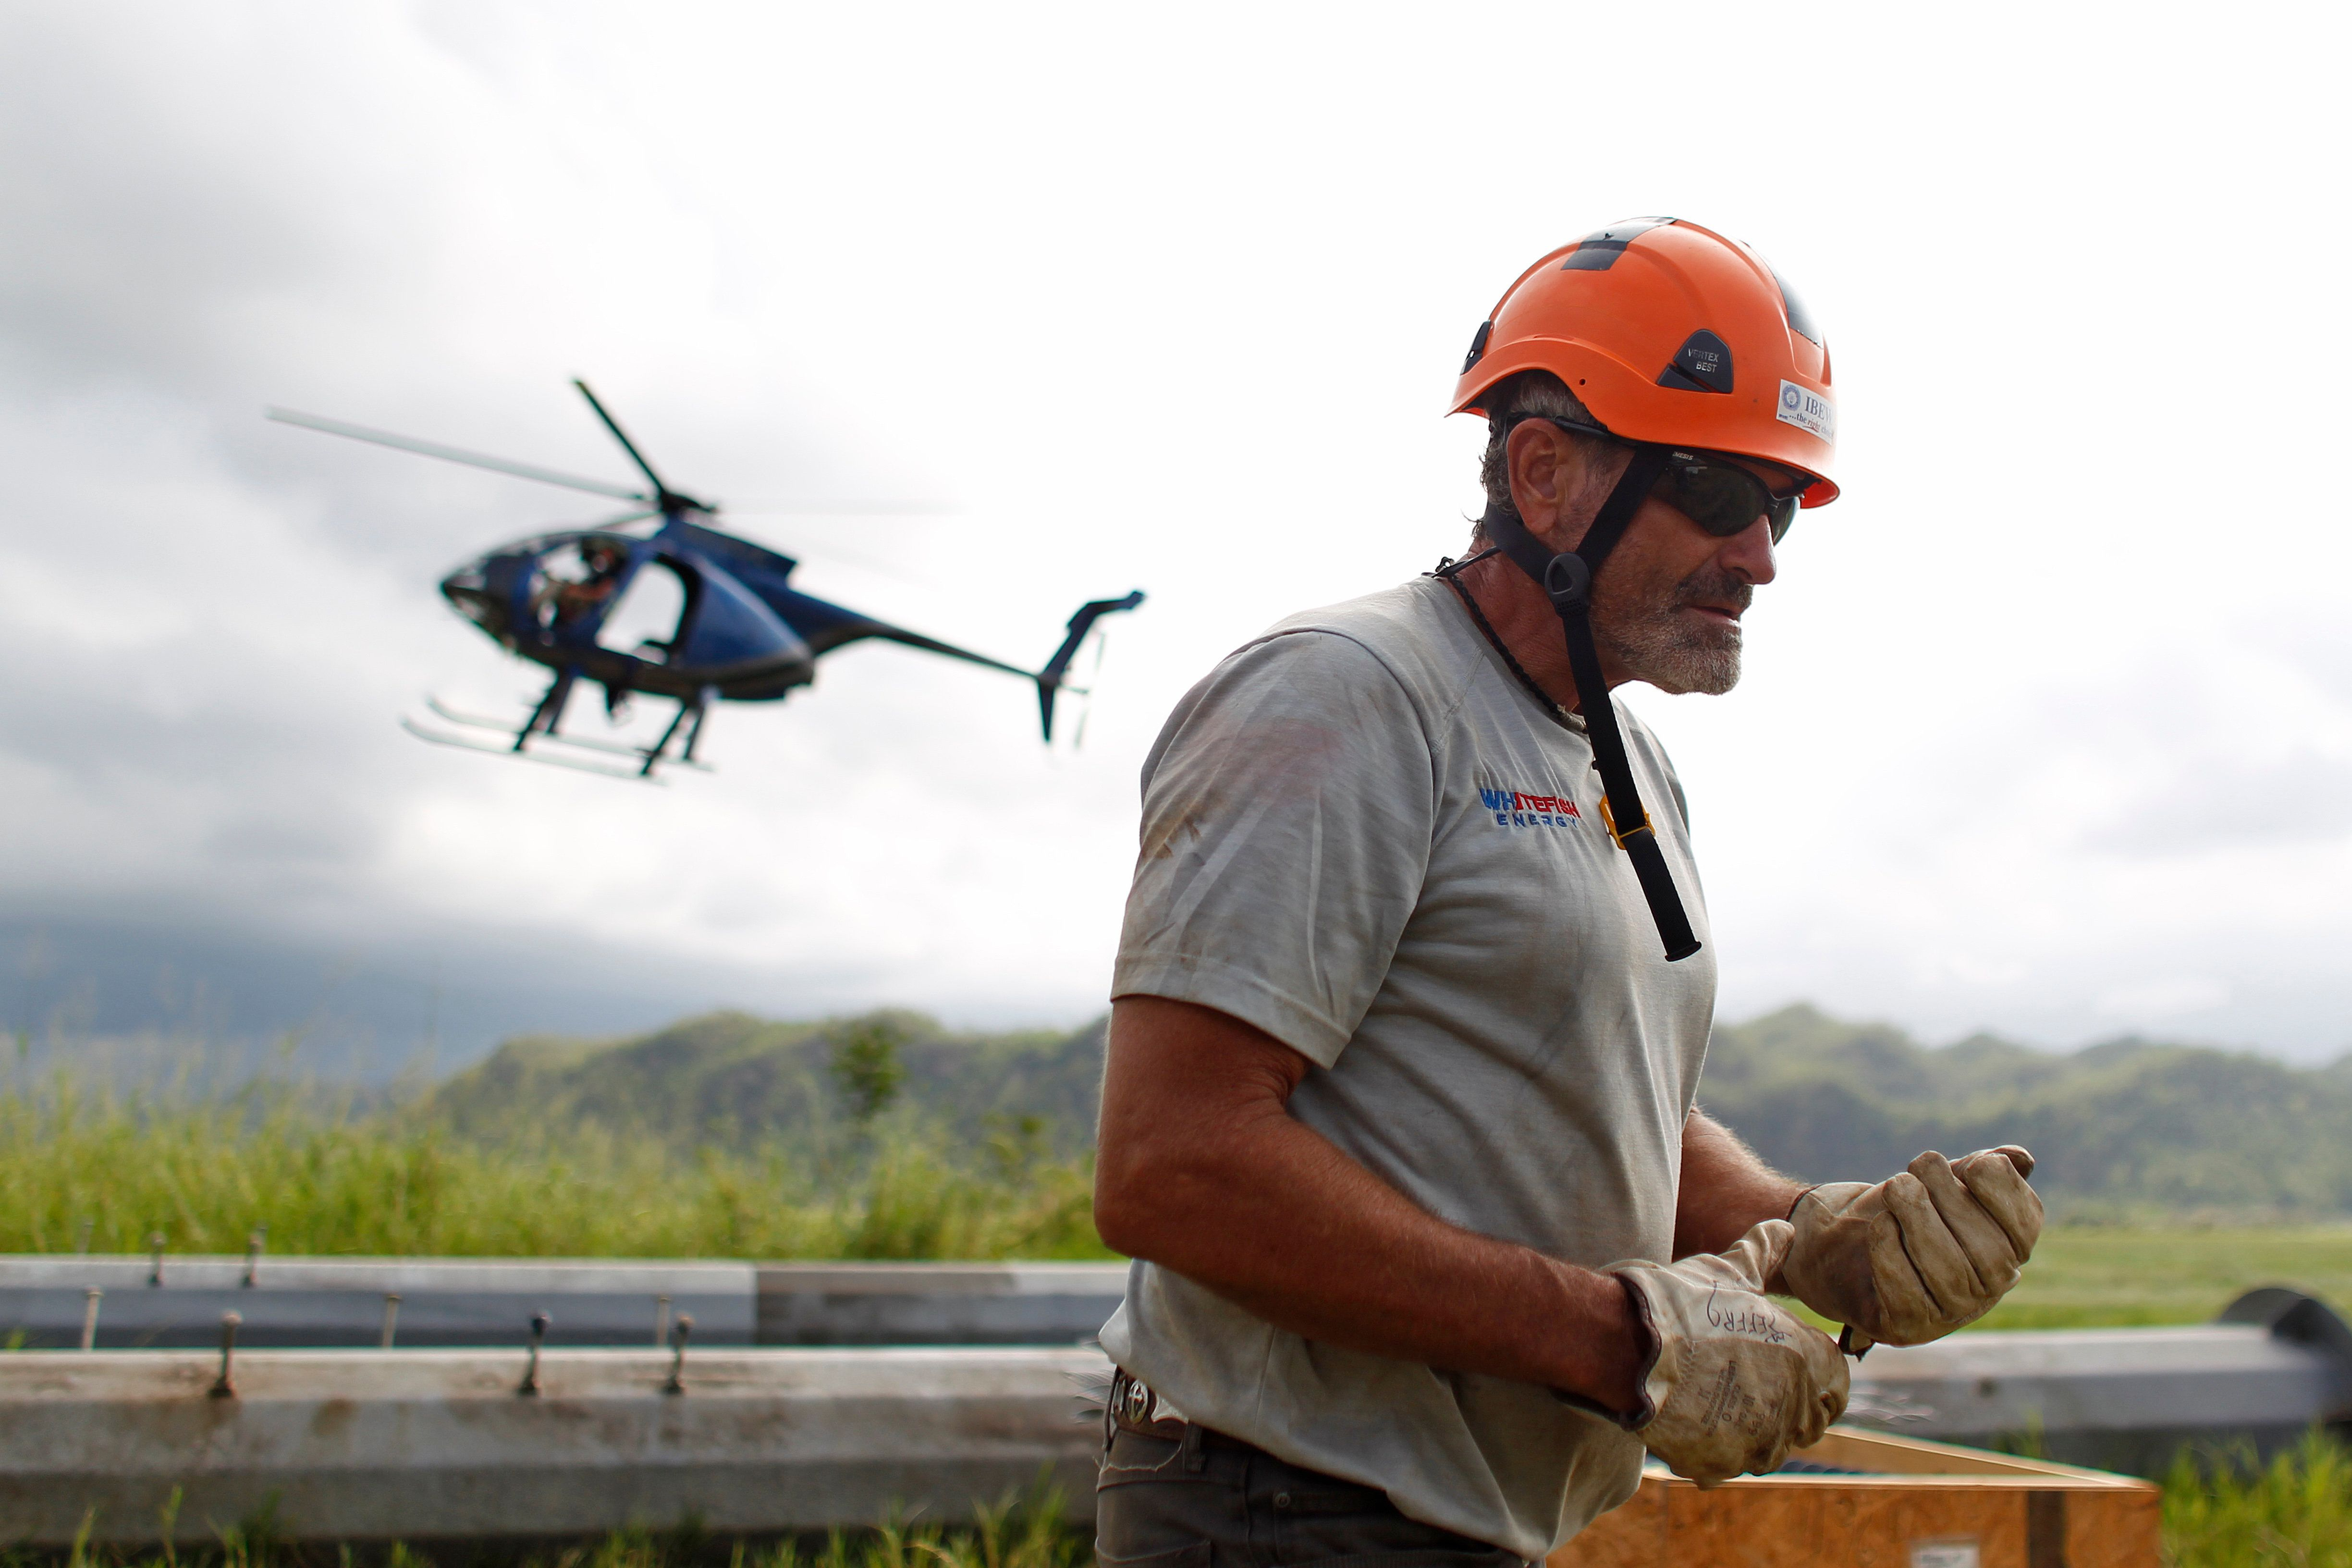 A helicopter from Whitefish Energy Holdings lands on site to pick up workers repairing power line towers after the passing of Hurricane Maria in Manati, Puerto Rico on October 31, 2017. Whitefish Energy had won a $300-million contract to help turn the lights back on in Puerto Rico, where some 80 percent of customers still lack power more than a month after Hurricane Maria ripped through the island. But Puerto Rico is scrapping the deal with the tiny American firm that fell under intense scrutiny the head of its power authority said on October 29, 2017. / AFP PHOTO / Ricardo ARDUENGO        (Photo credit should read RICARDO ARDUENGO/AFP/Getty Images)